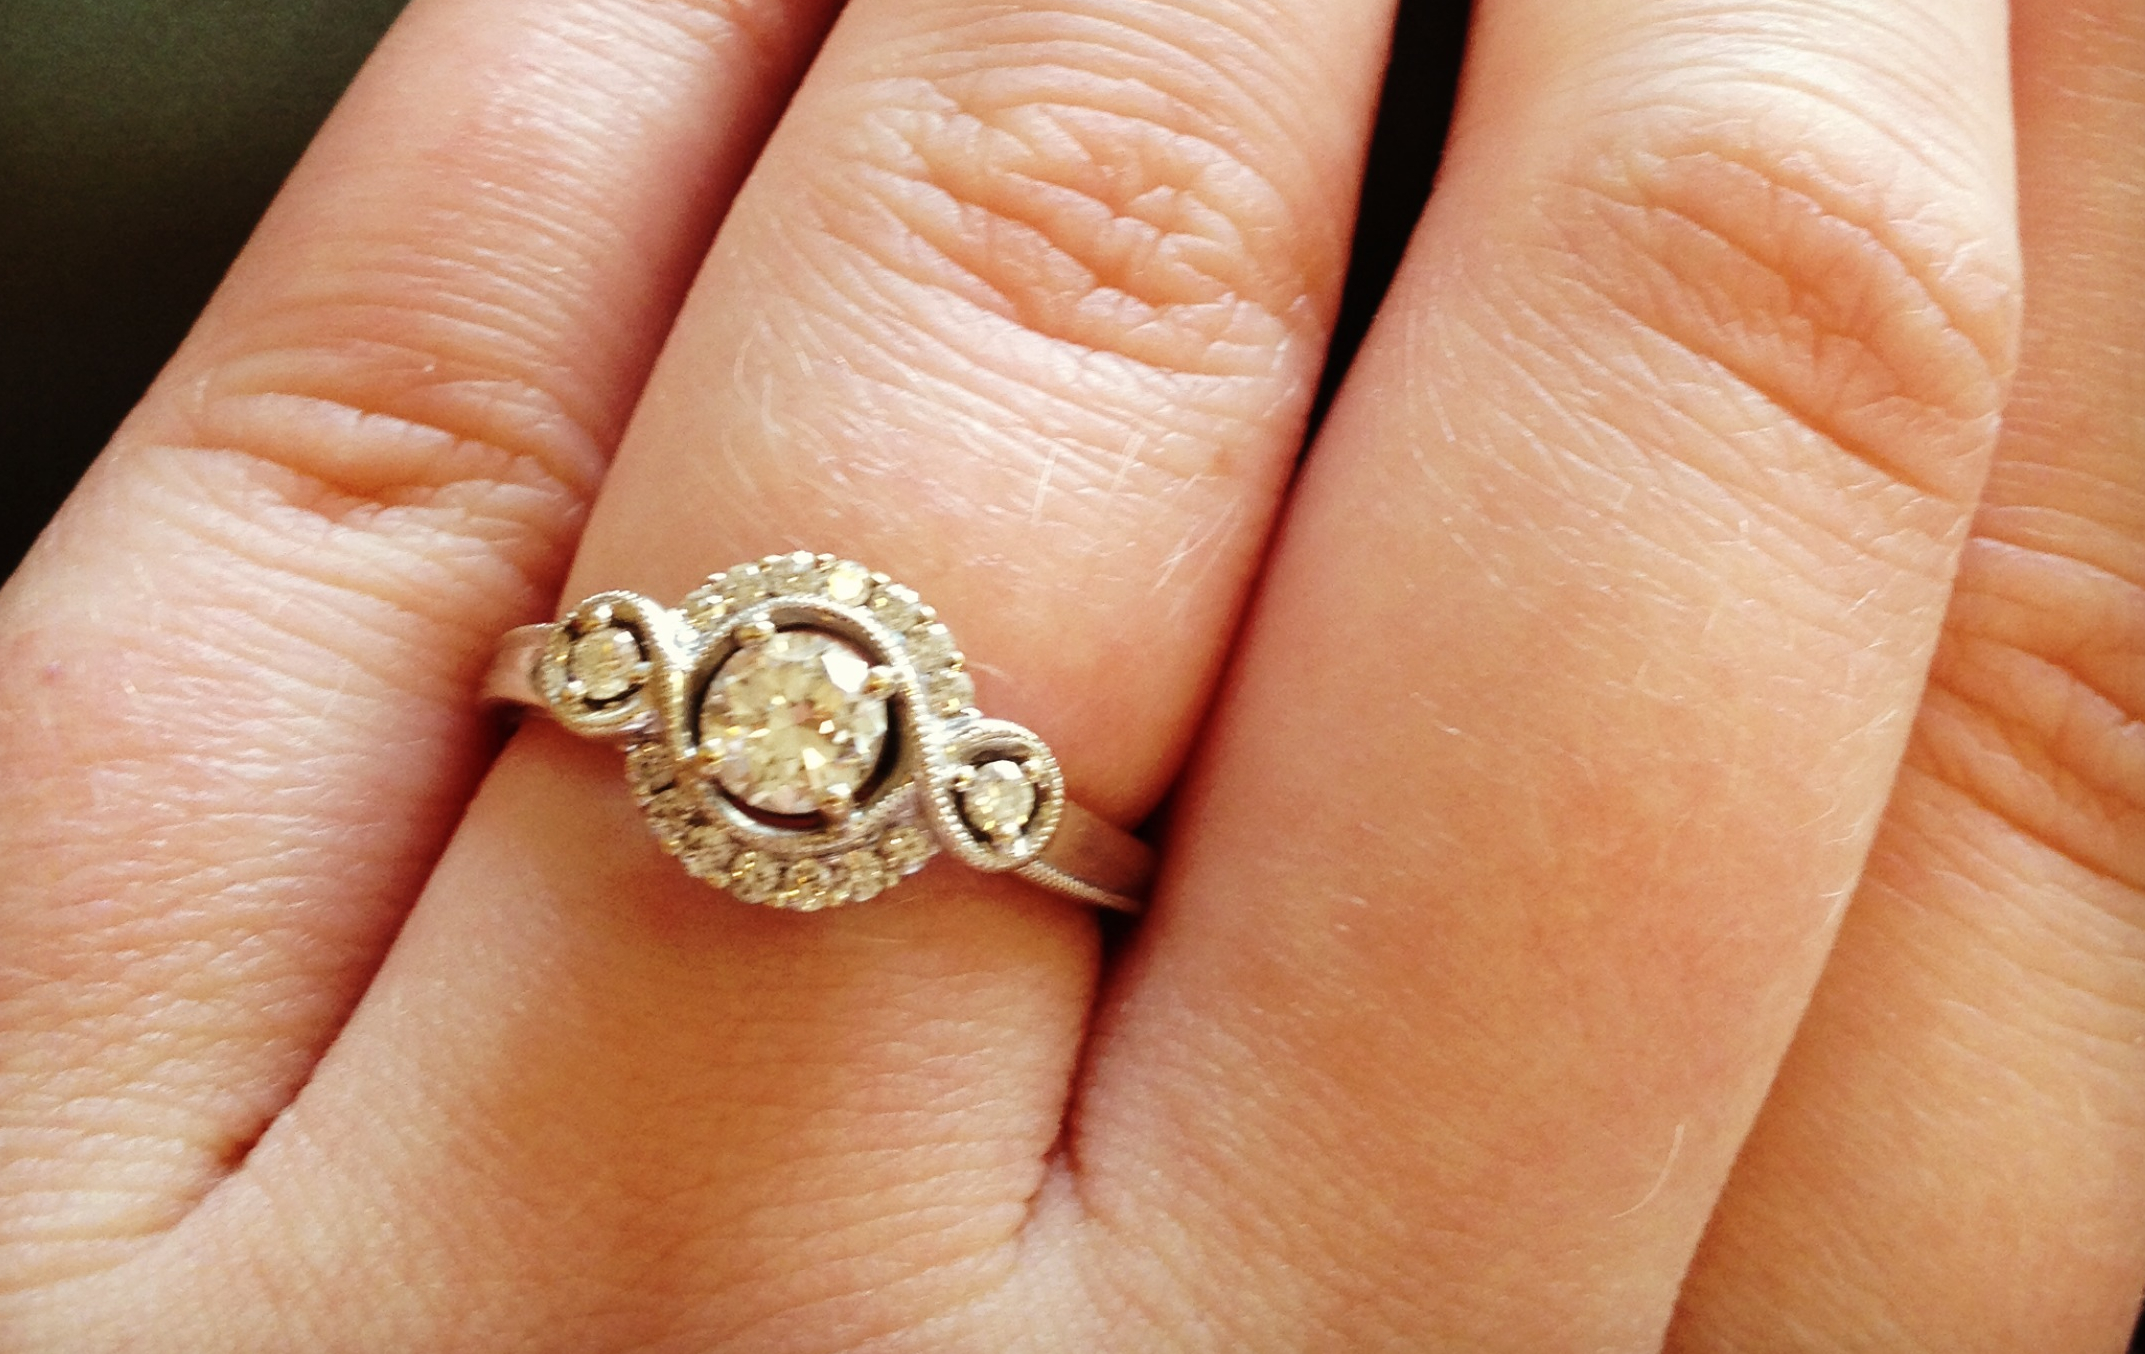 Image 7 of Reader's Rings II; Engagement Ring Photos Submitted by You!